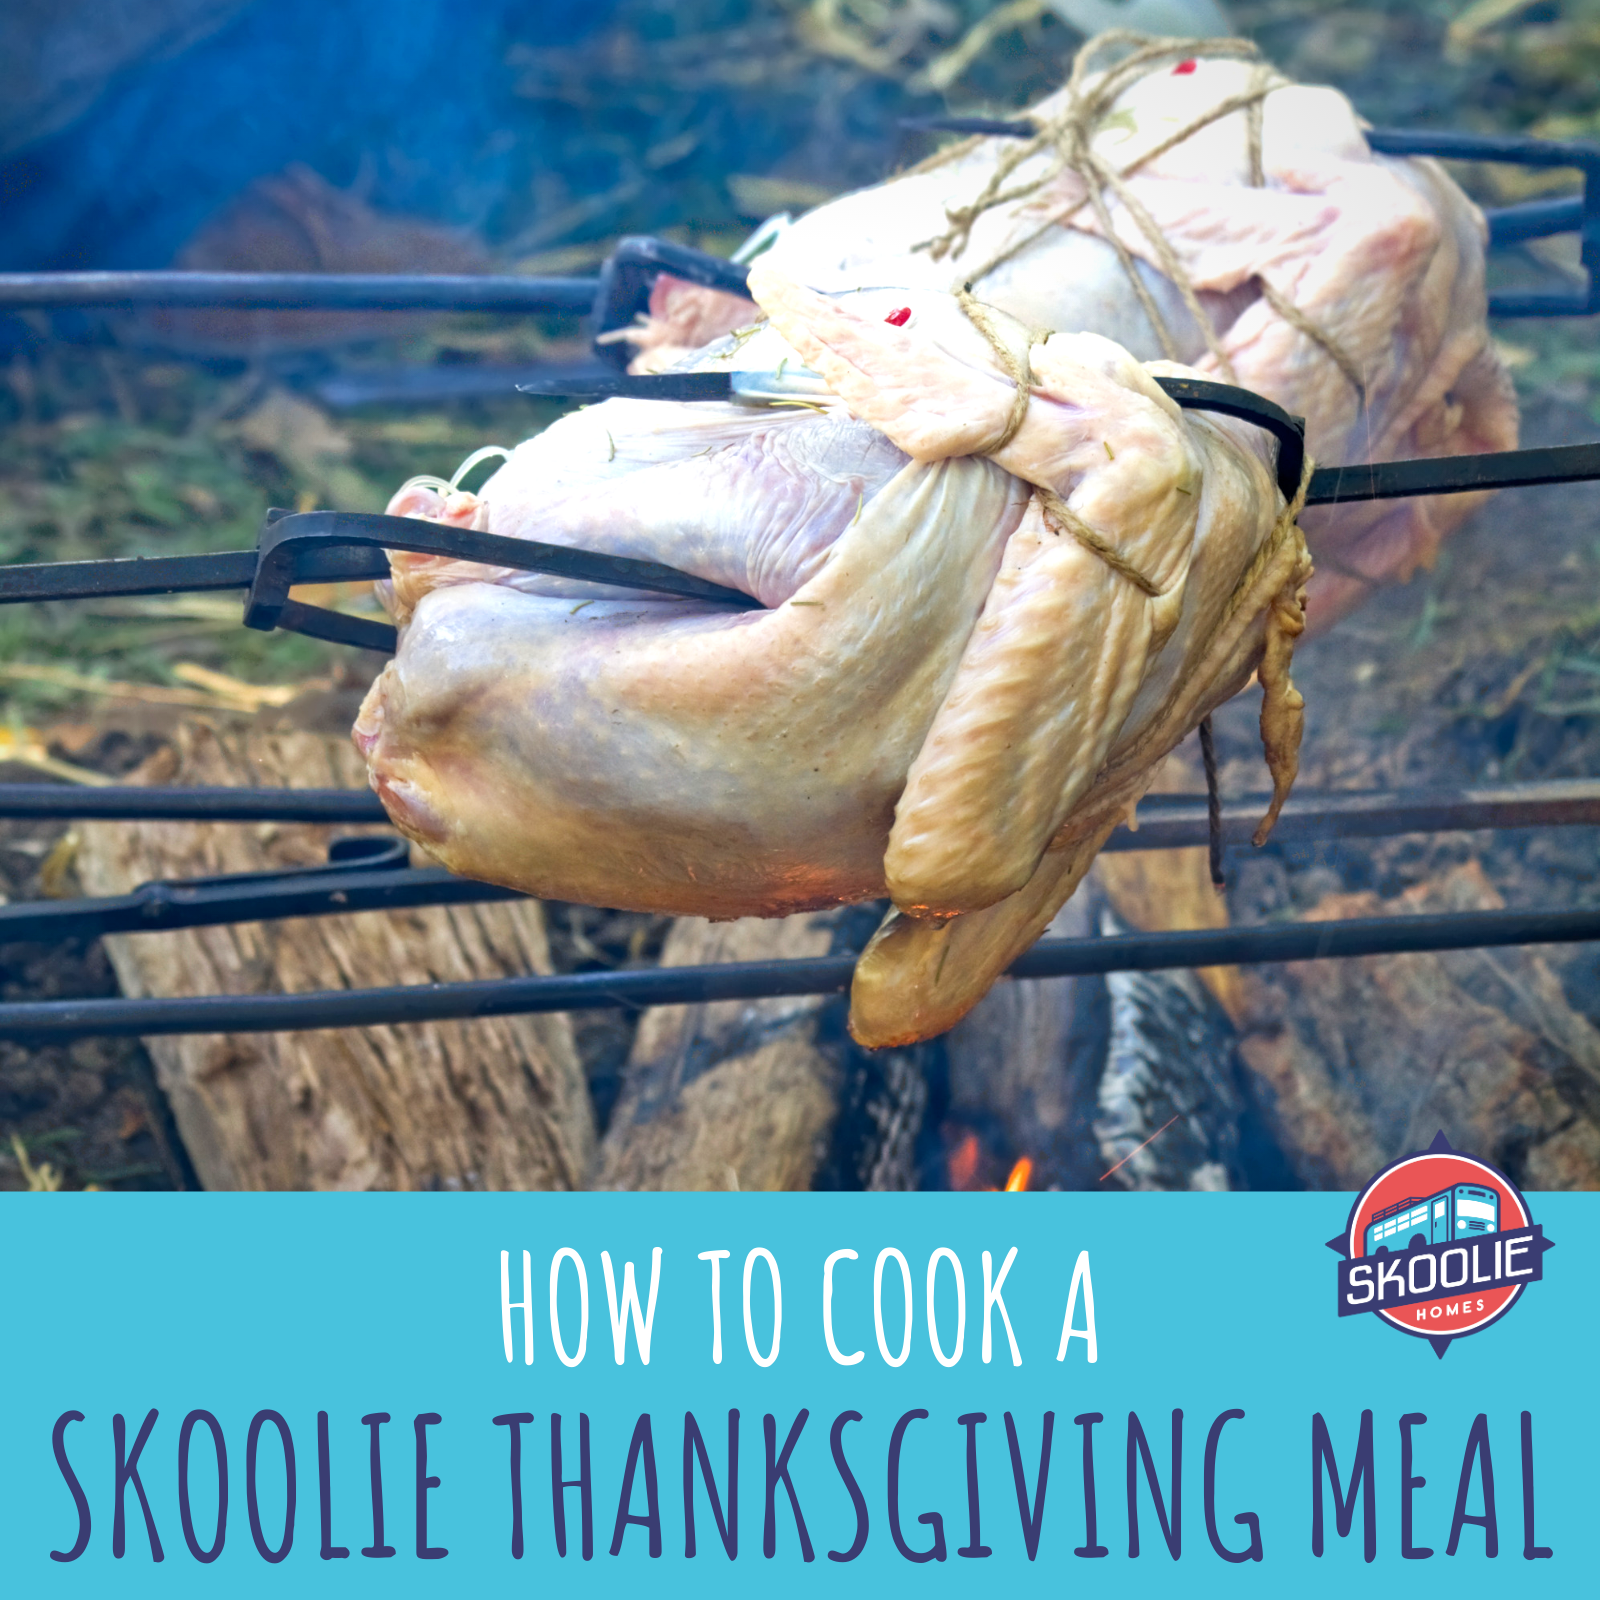 Skoolie Thanksgiving Meal